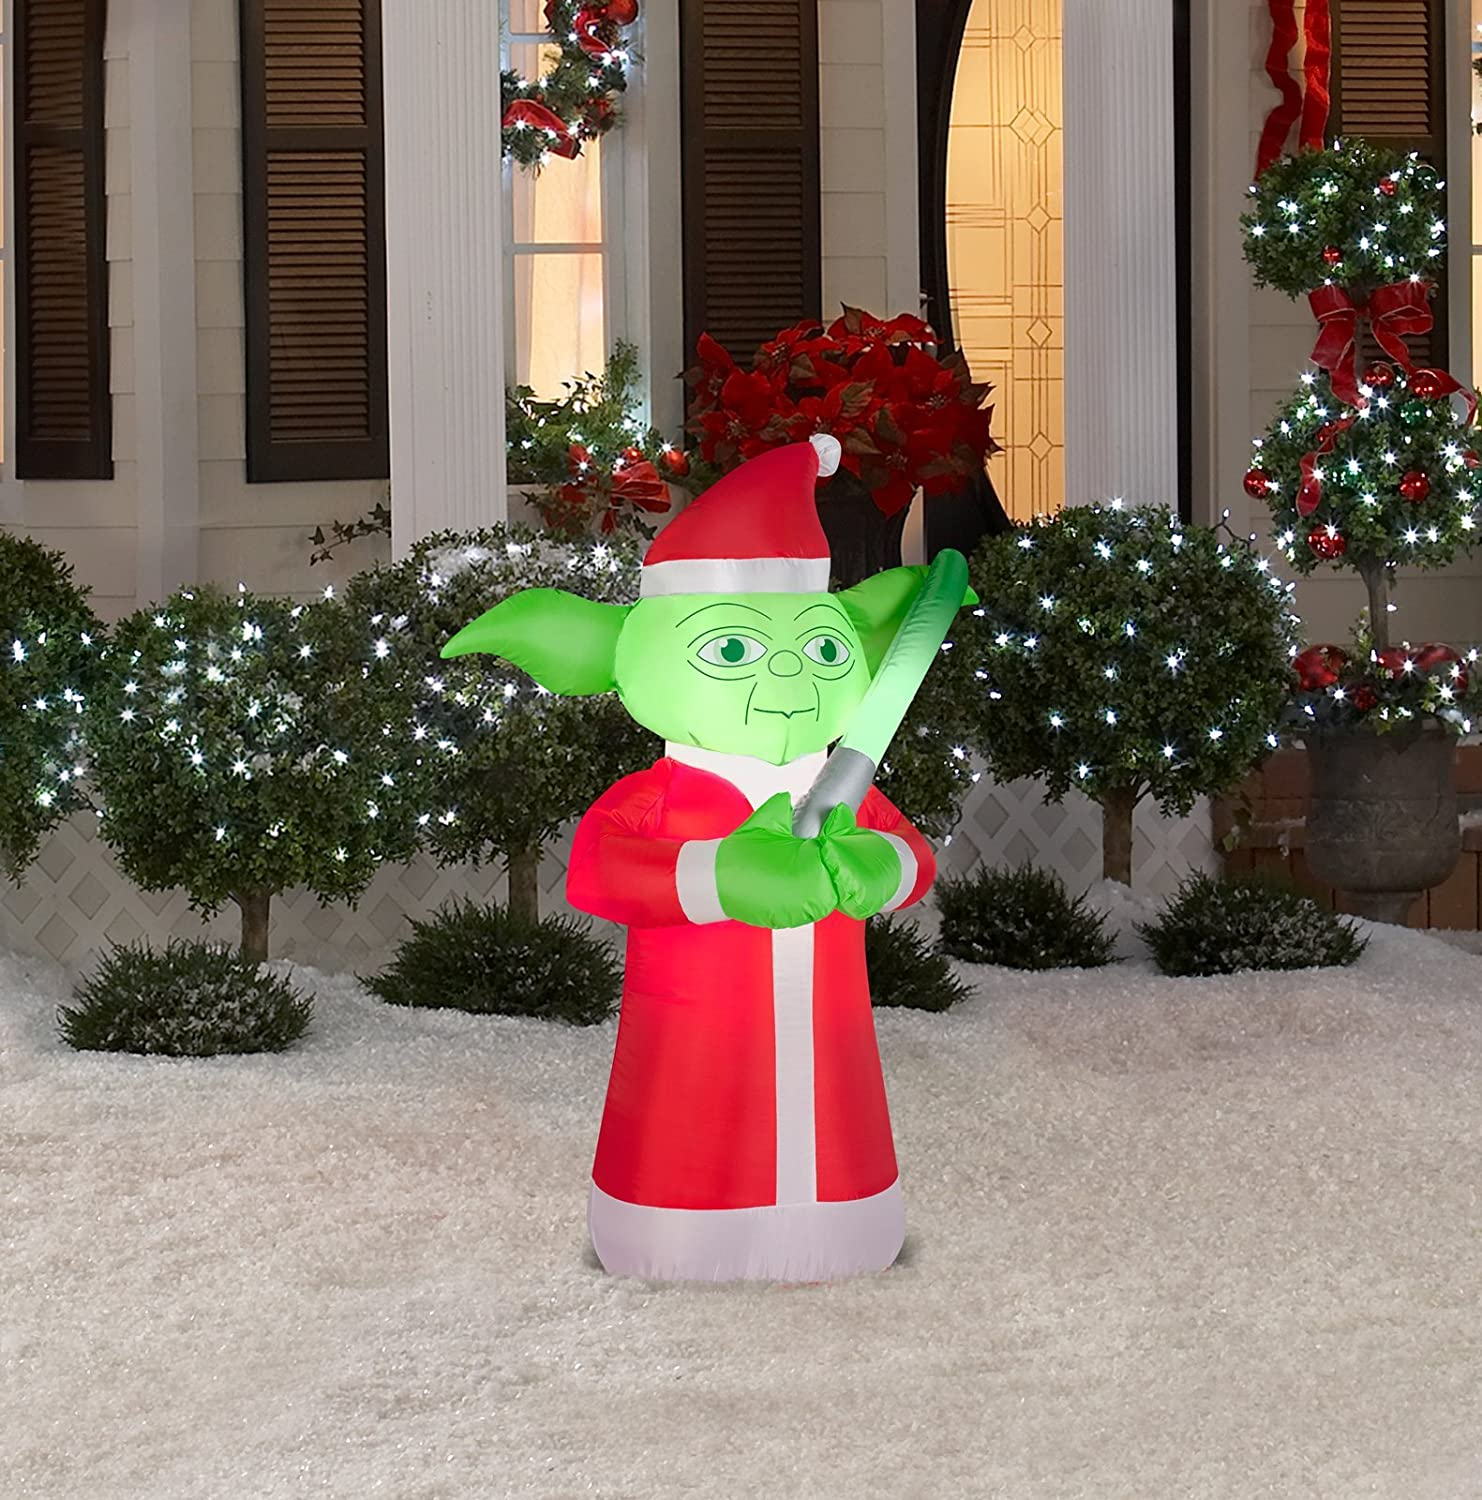 Amazon Gemmy Airblown Inflatable Yoda Wearing Dressed Santa Holiday Yard